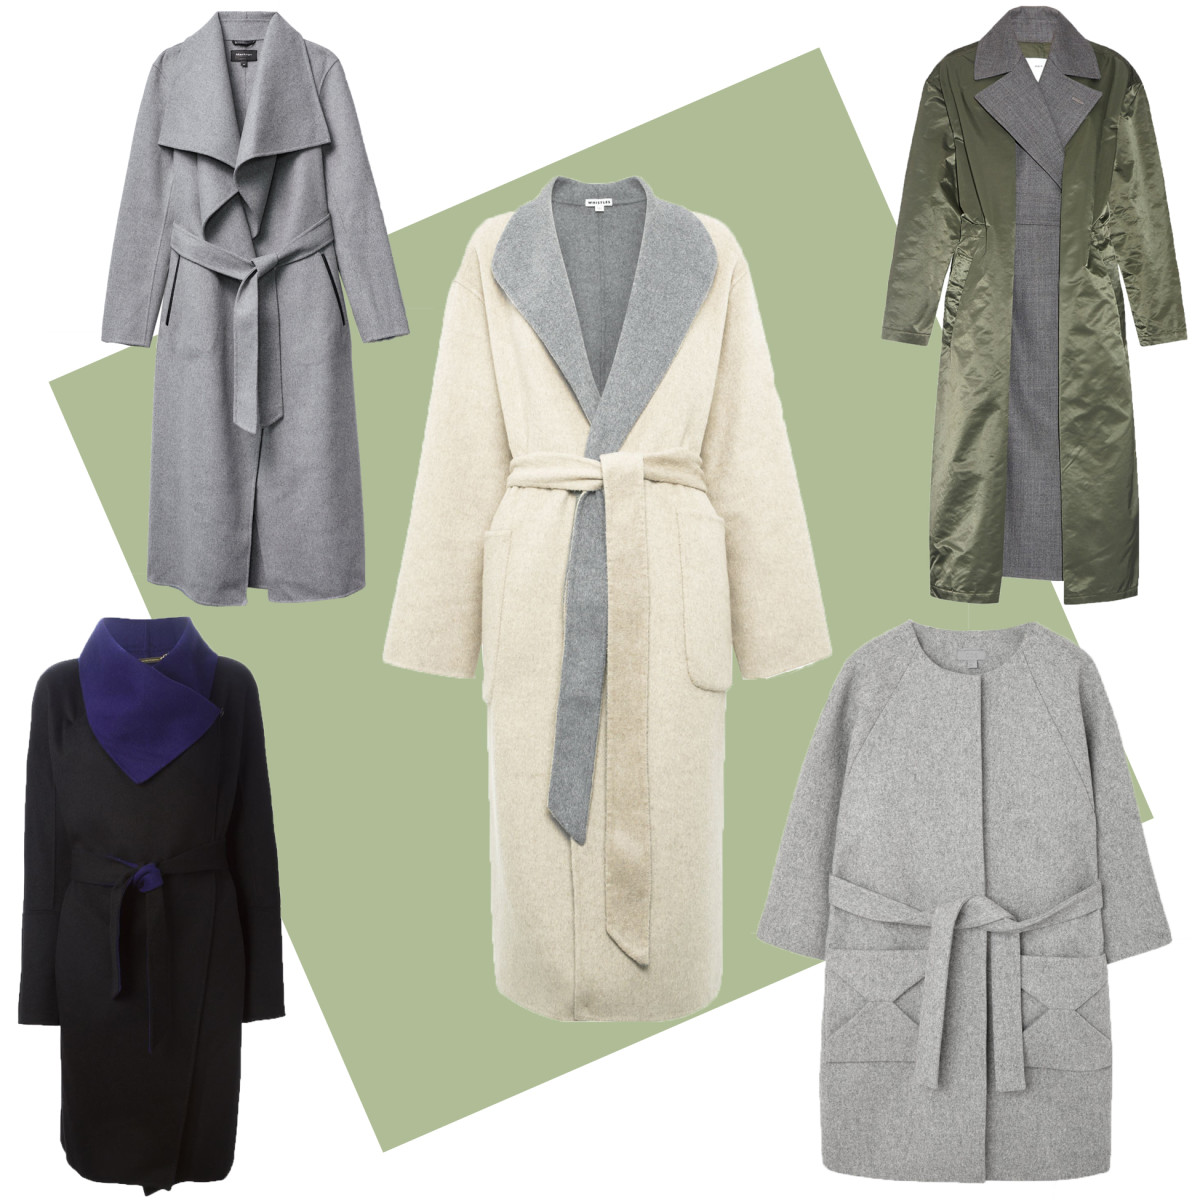 TOP LEFT; Mackage Mai coat, $750, available at Aritzia and Mackage; CENTER: Whistles split seam reversible coat, $470, available at Whistles; TOP RIGHT: Toga contrast-layer belted-front coat, $823, available at Matches Fashion; BOTTOM LEFT: Diane Von Furstenberg wrap coat, $985.20, available at Farfetch; BOTTOM RIGHT: Cos envelope pocket coat, $275, available at Cos.